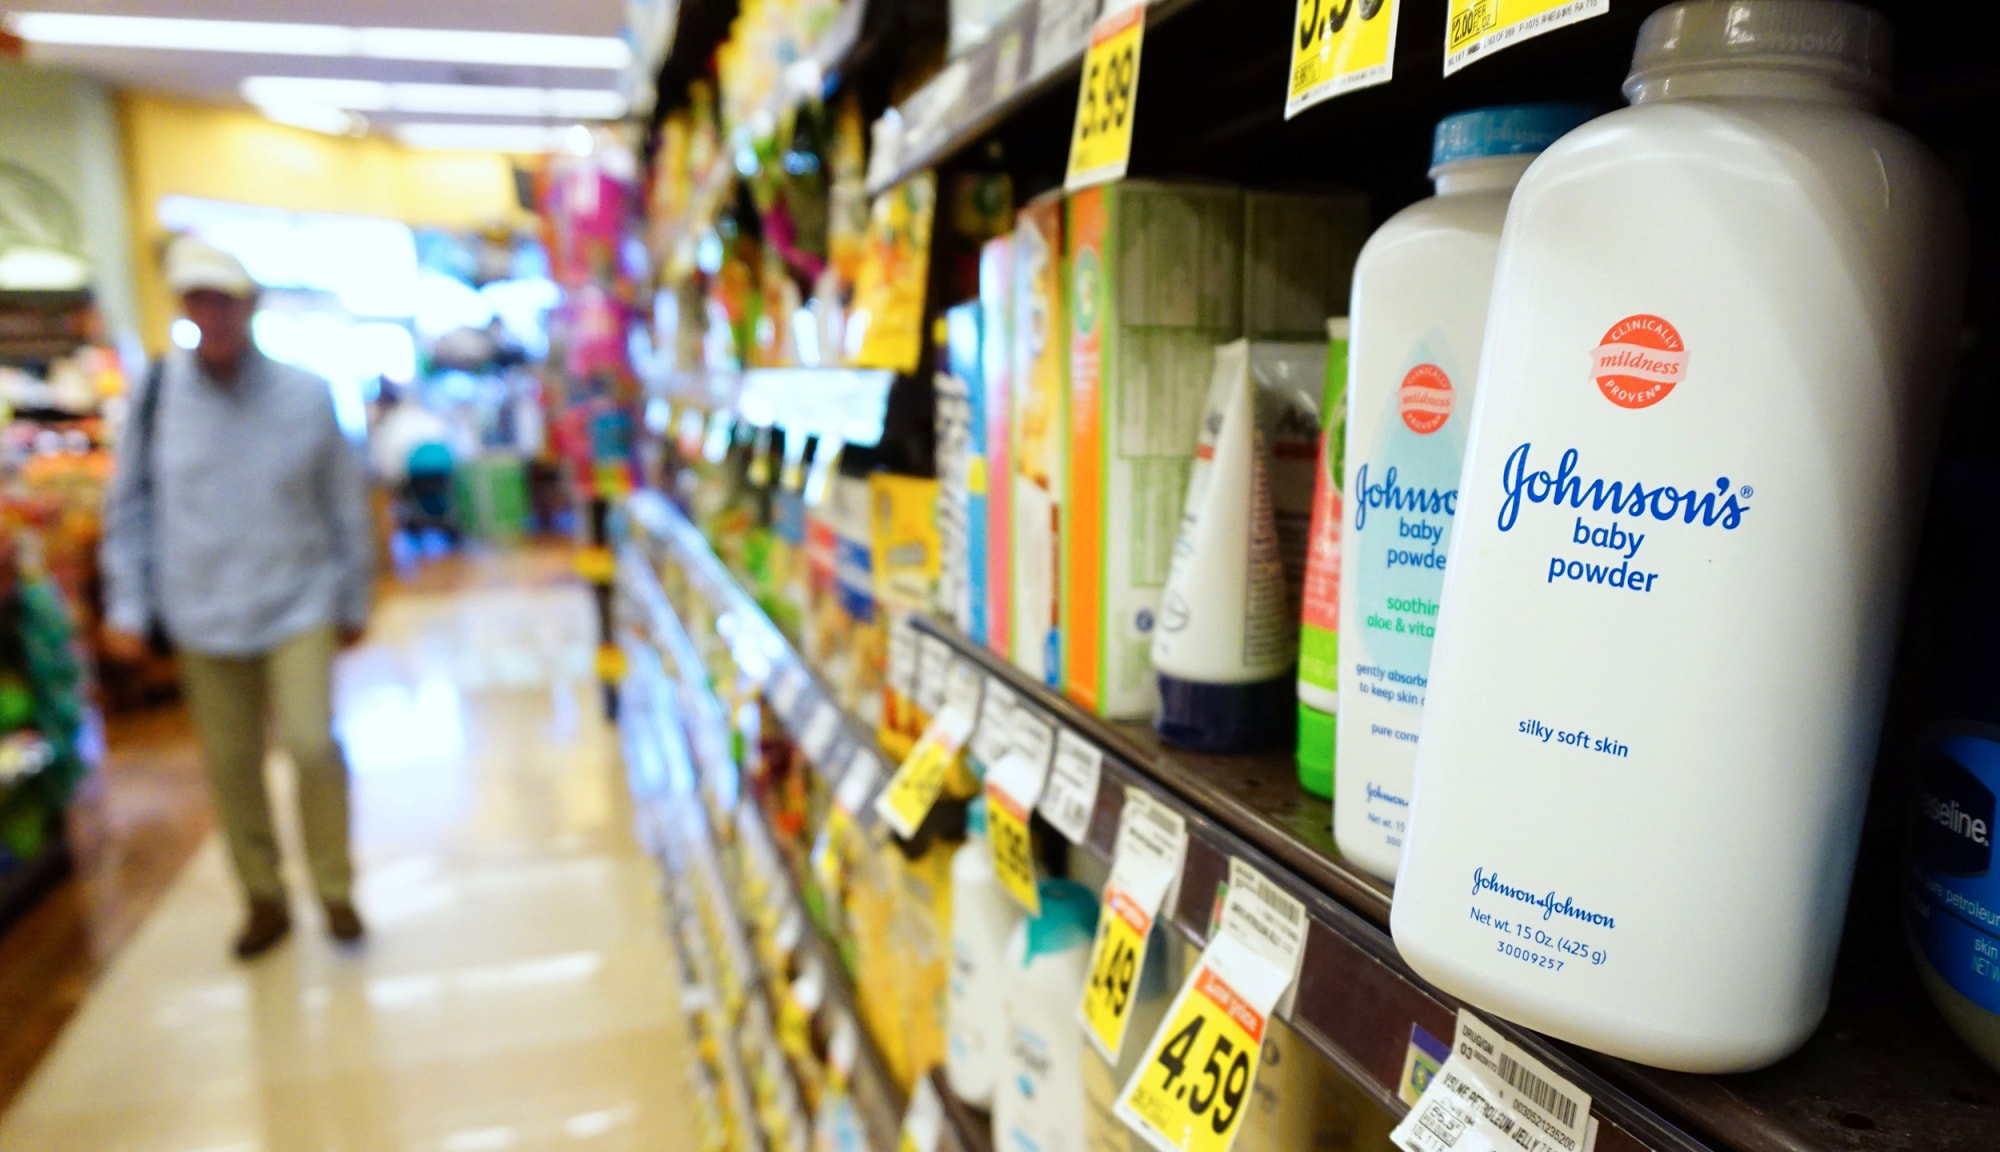 Johnson & Johnson talc verdict goes against what is known about cancer (nbcnews.com)